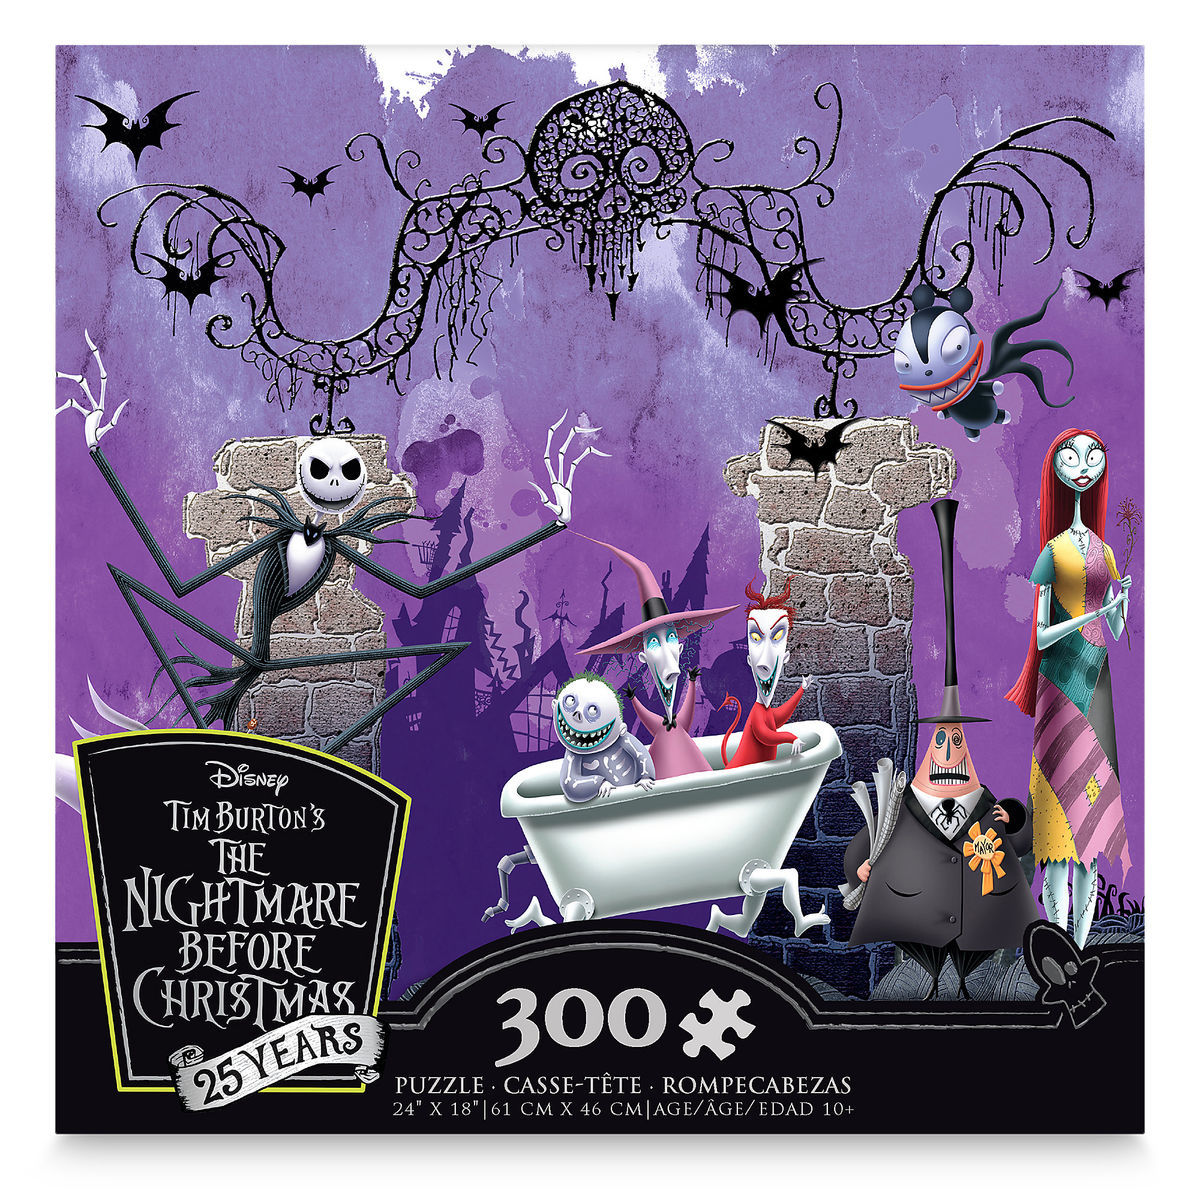 The Nightmare Before Christmas Jigsaw Puzzle by Ceaco | shopDisney